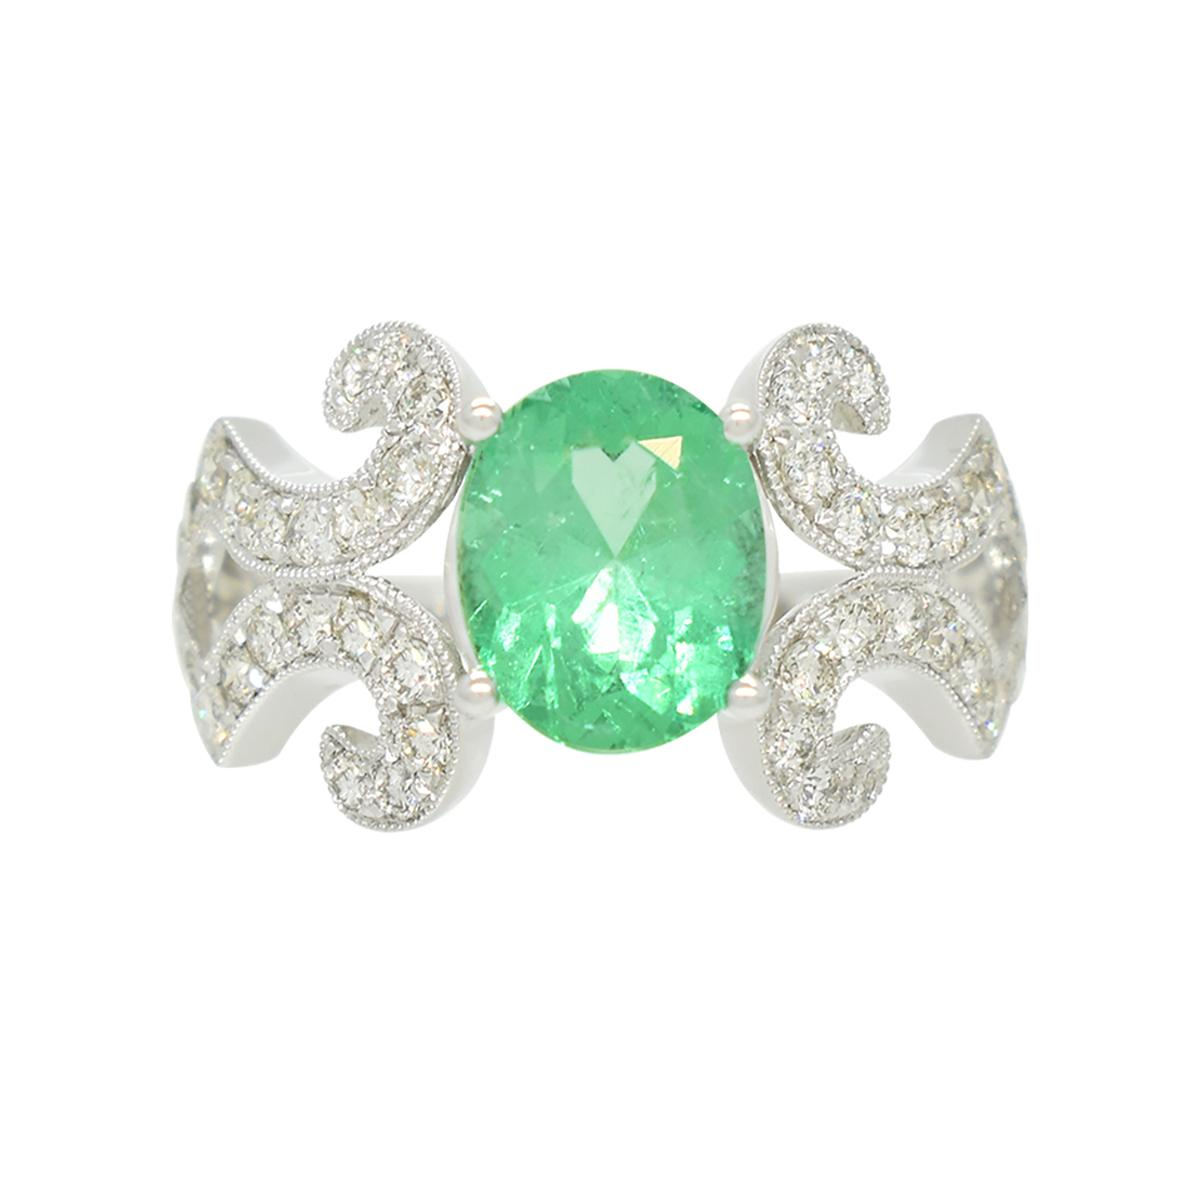 stunning-white-gold-emerald-ring-with-oval-shape-genuine-emerald-and-44-round-diamonds